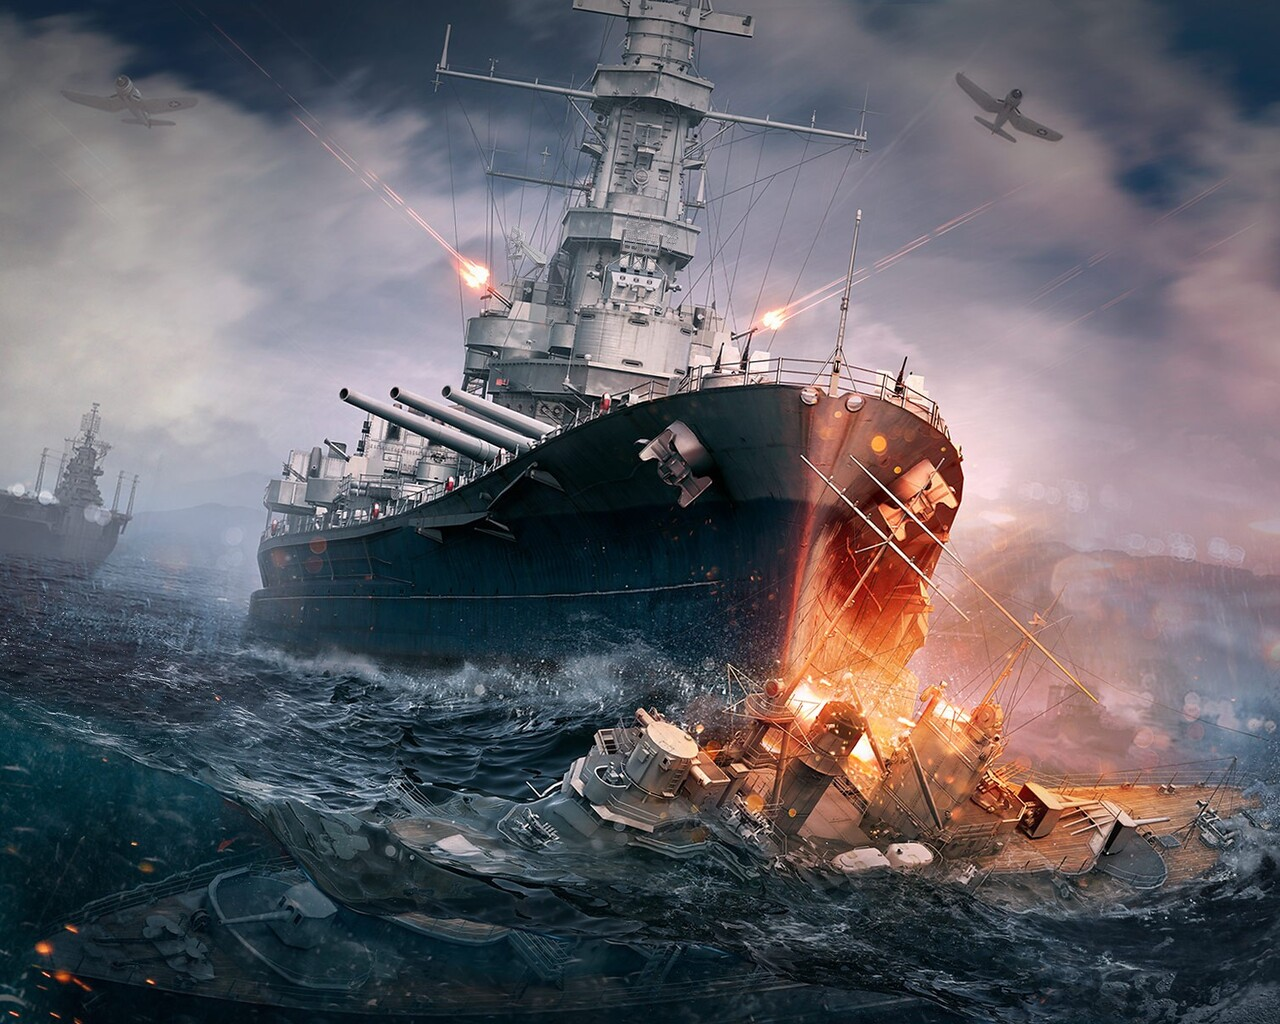 1280x1024 World Of Warships 1280x1024 Resolution Hd 4k Wallpapers